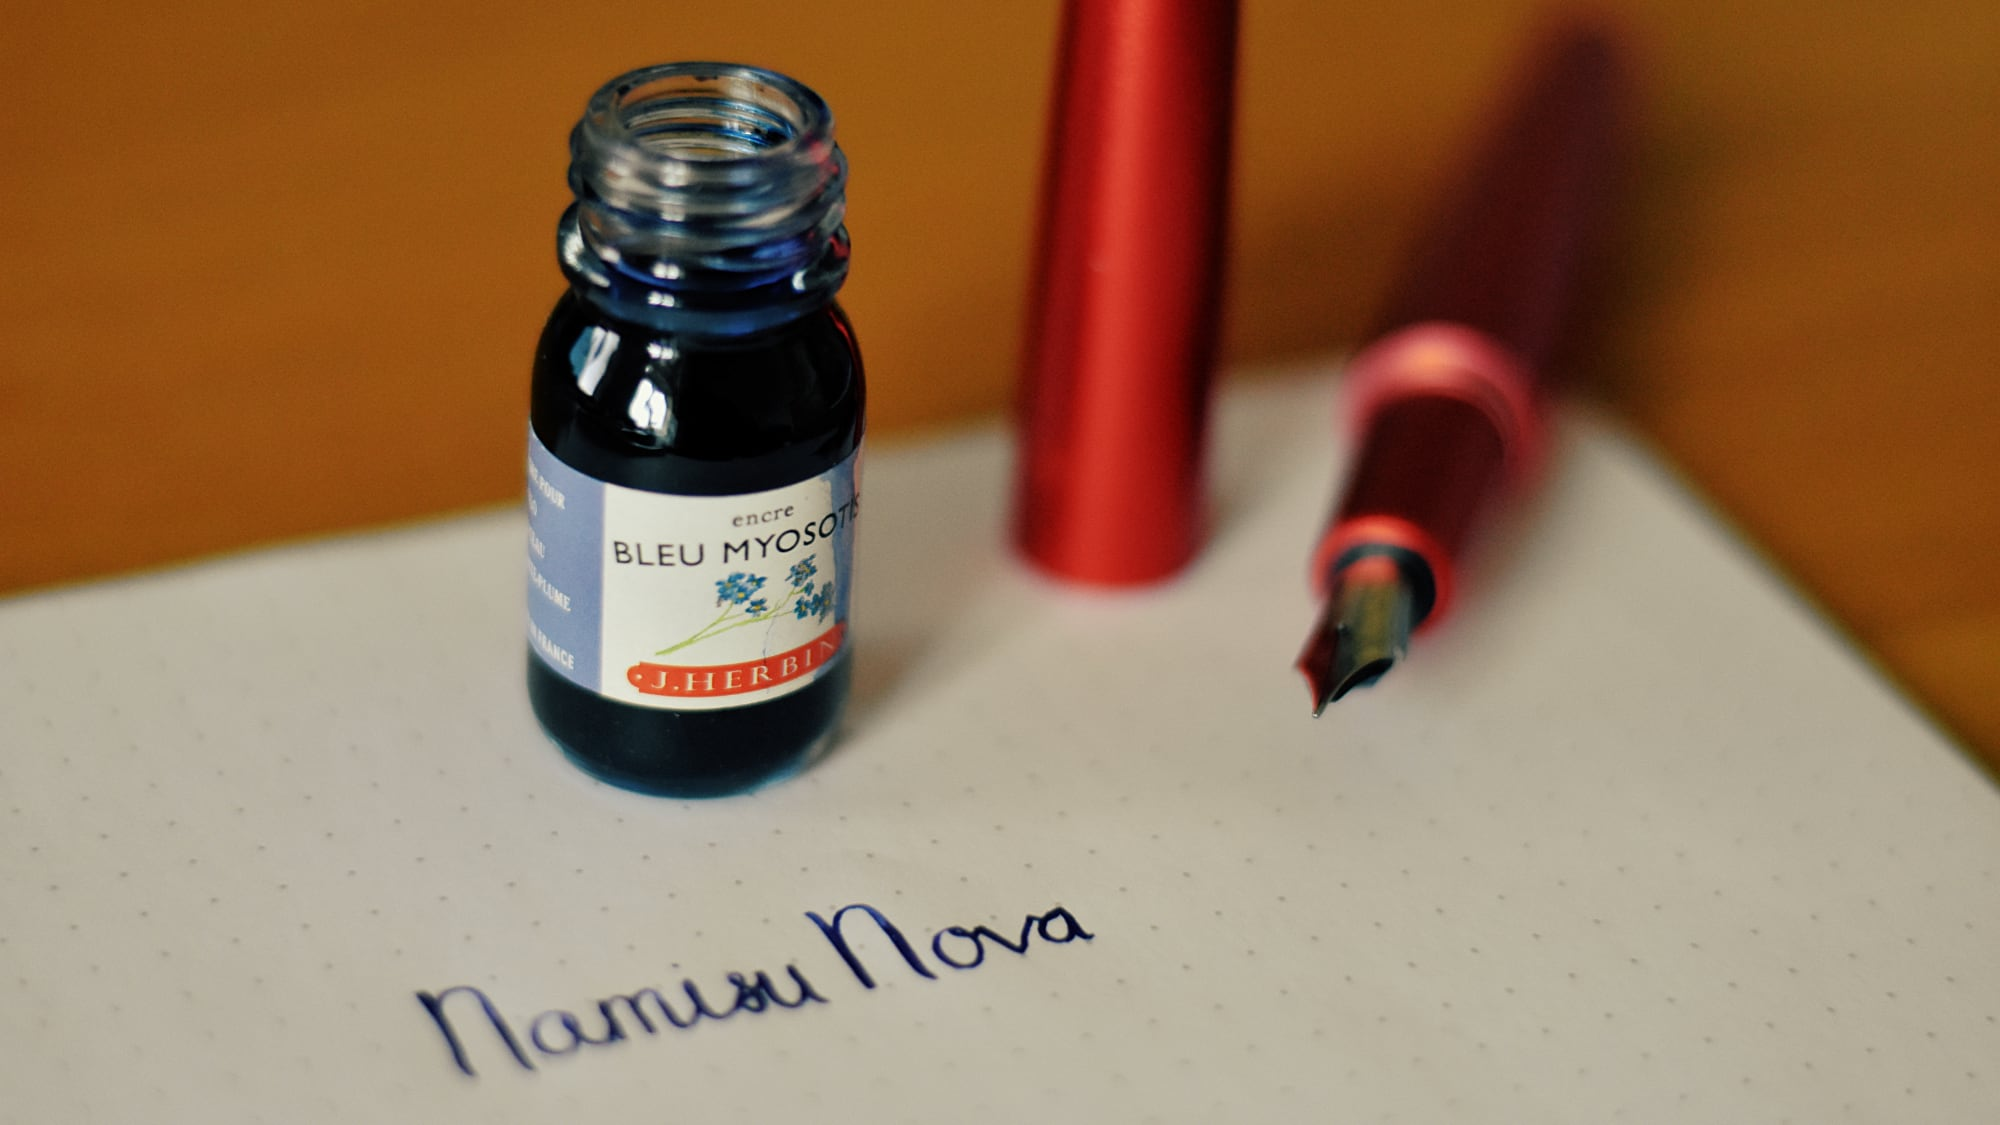 The Nova pictured with J. Herbin Bleu Myosotis ink